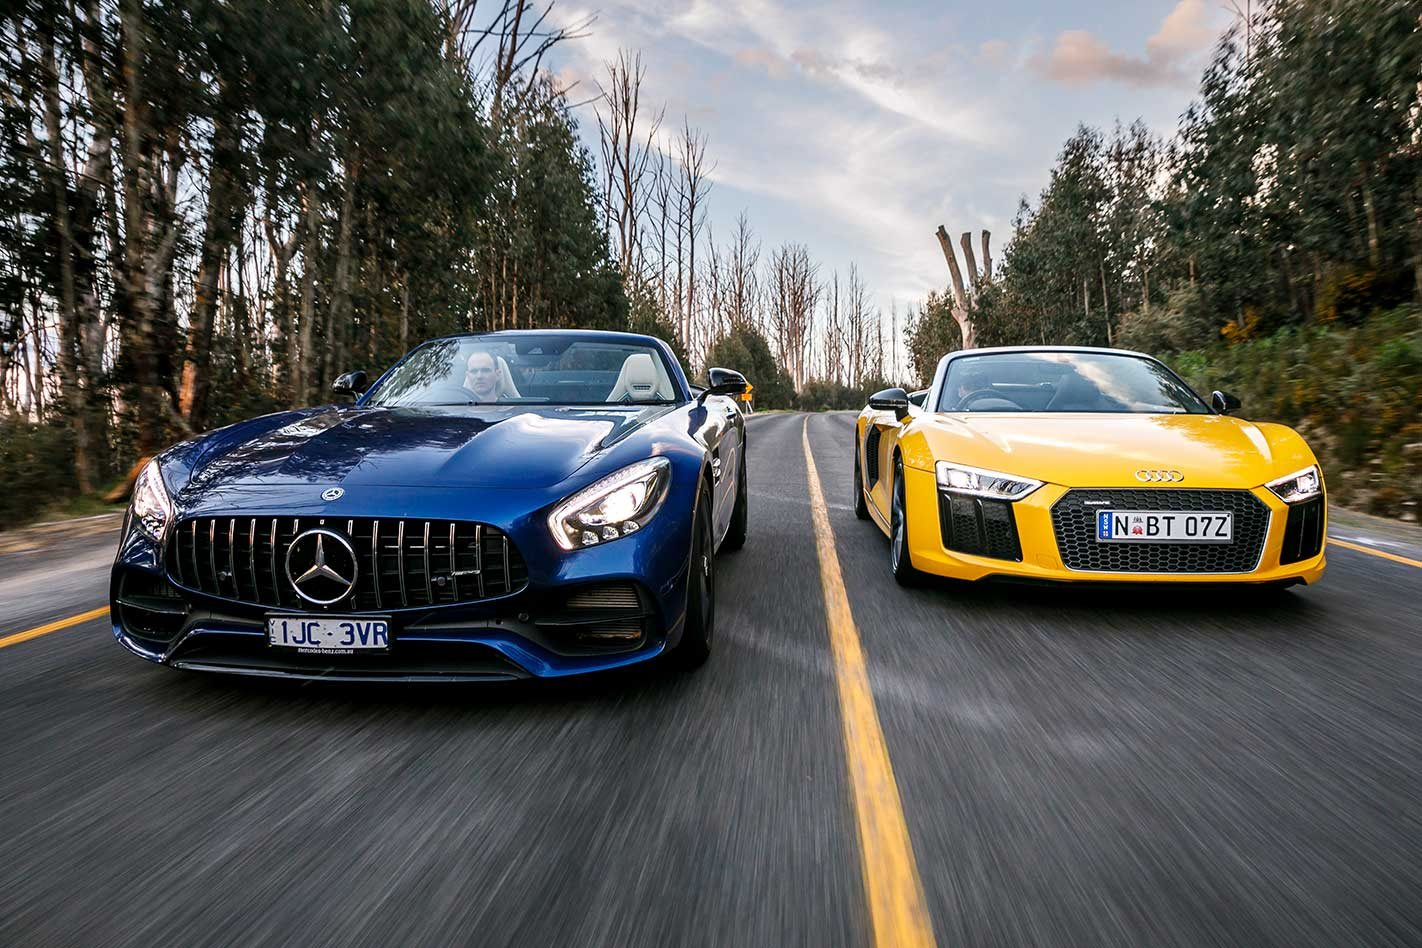 2018 Audi R8 V10 Spyder Vs Mercedes Amg Gt Roadster Performance